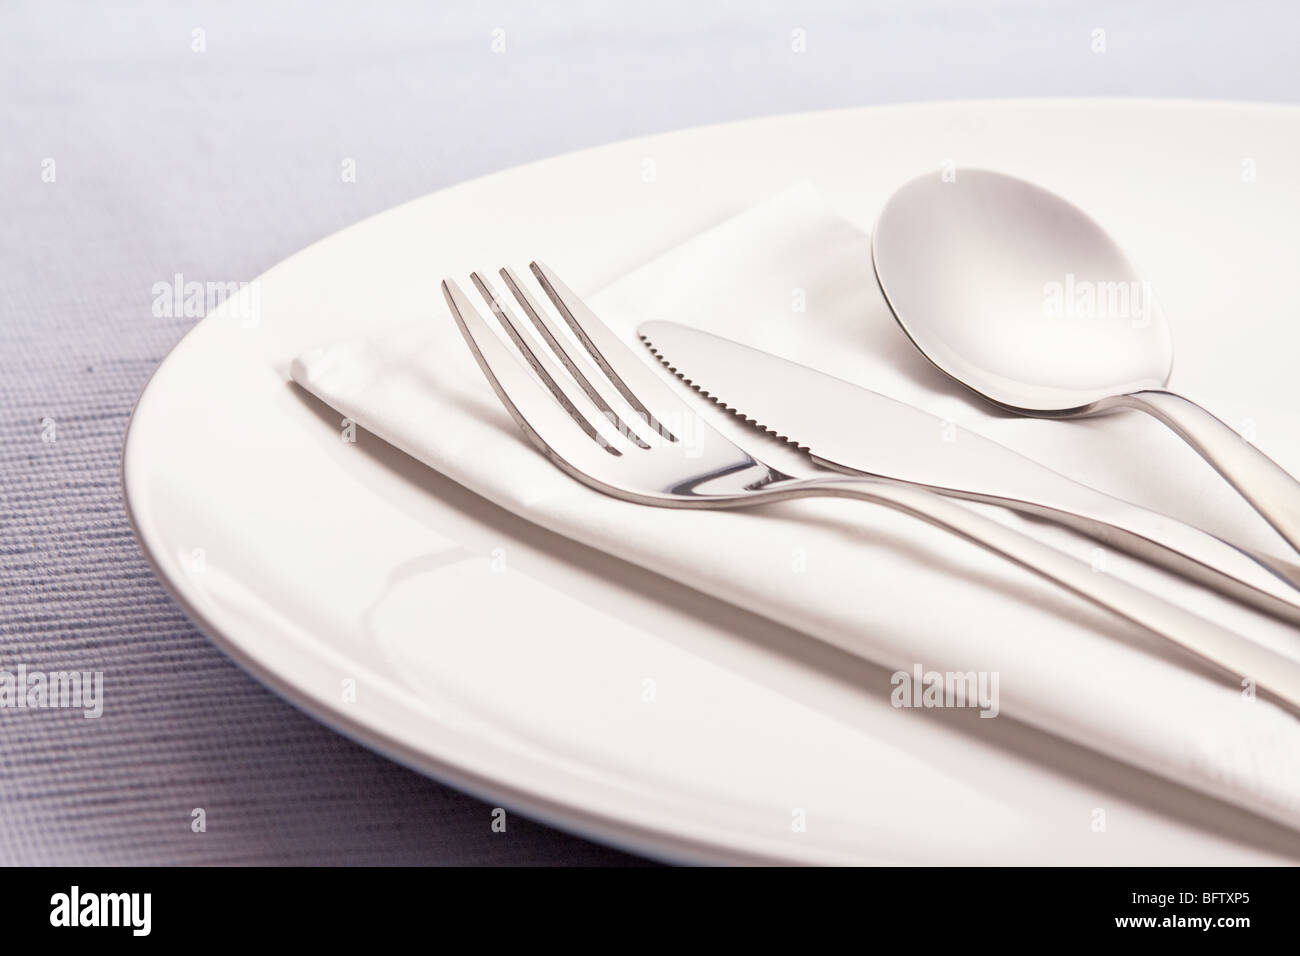 silverware on plate - Stock Image